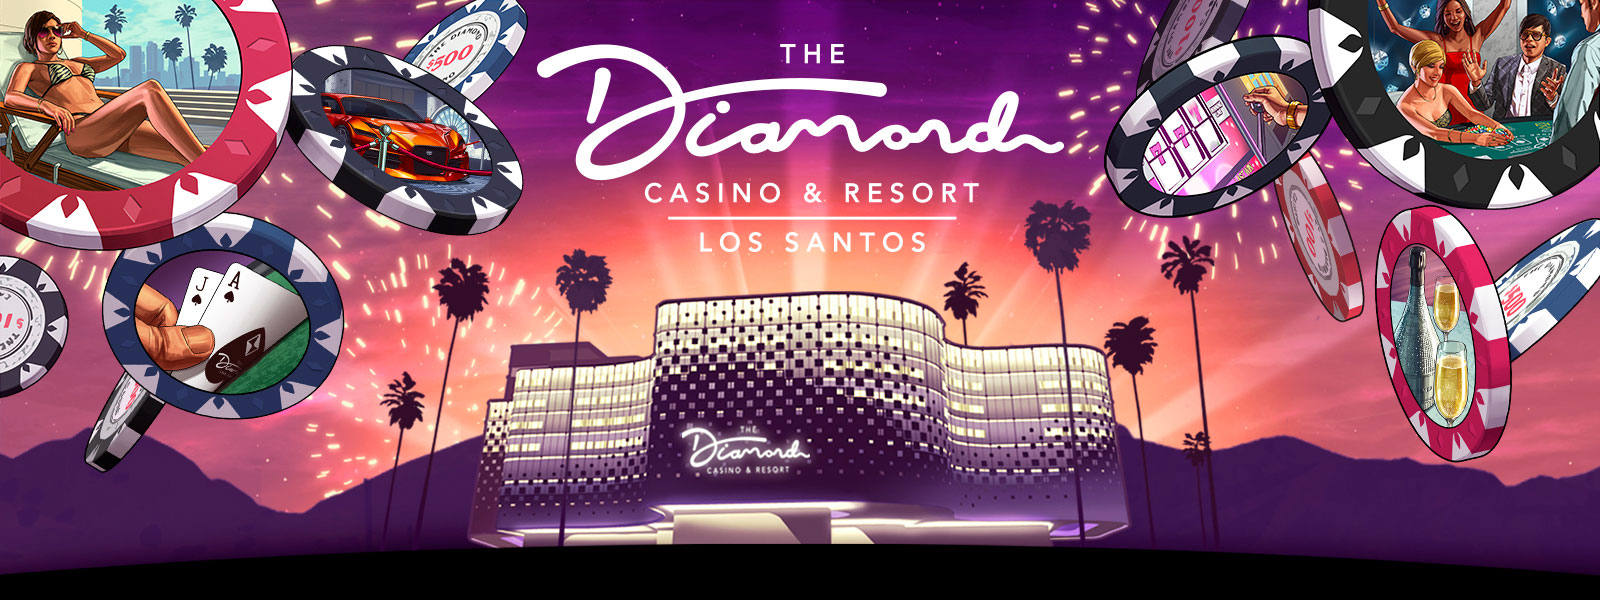 The Diamond Casino & Resort, Los Santos logo, front view of a building with palm trees, fireworks, and casino chips falling with various images on them